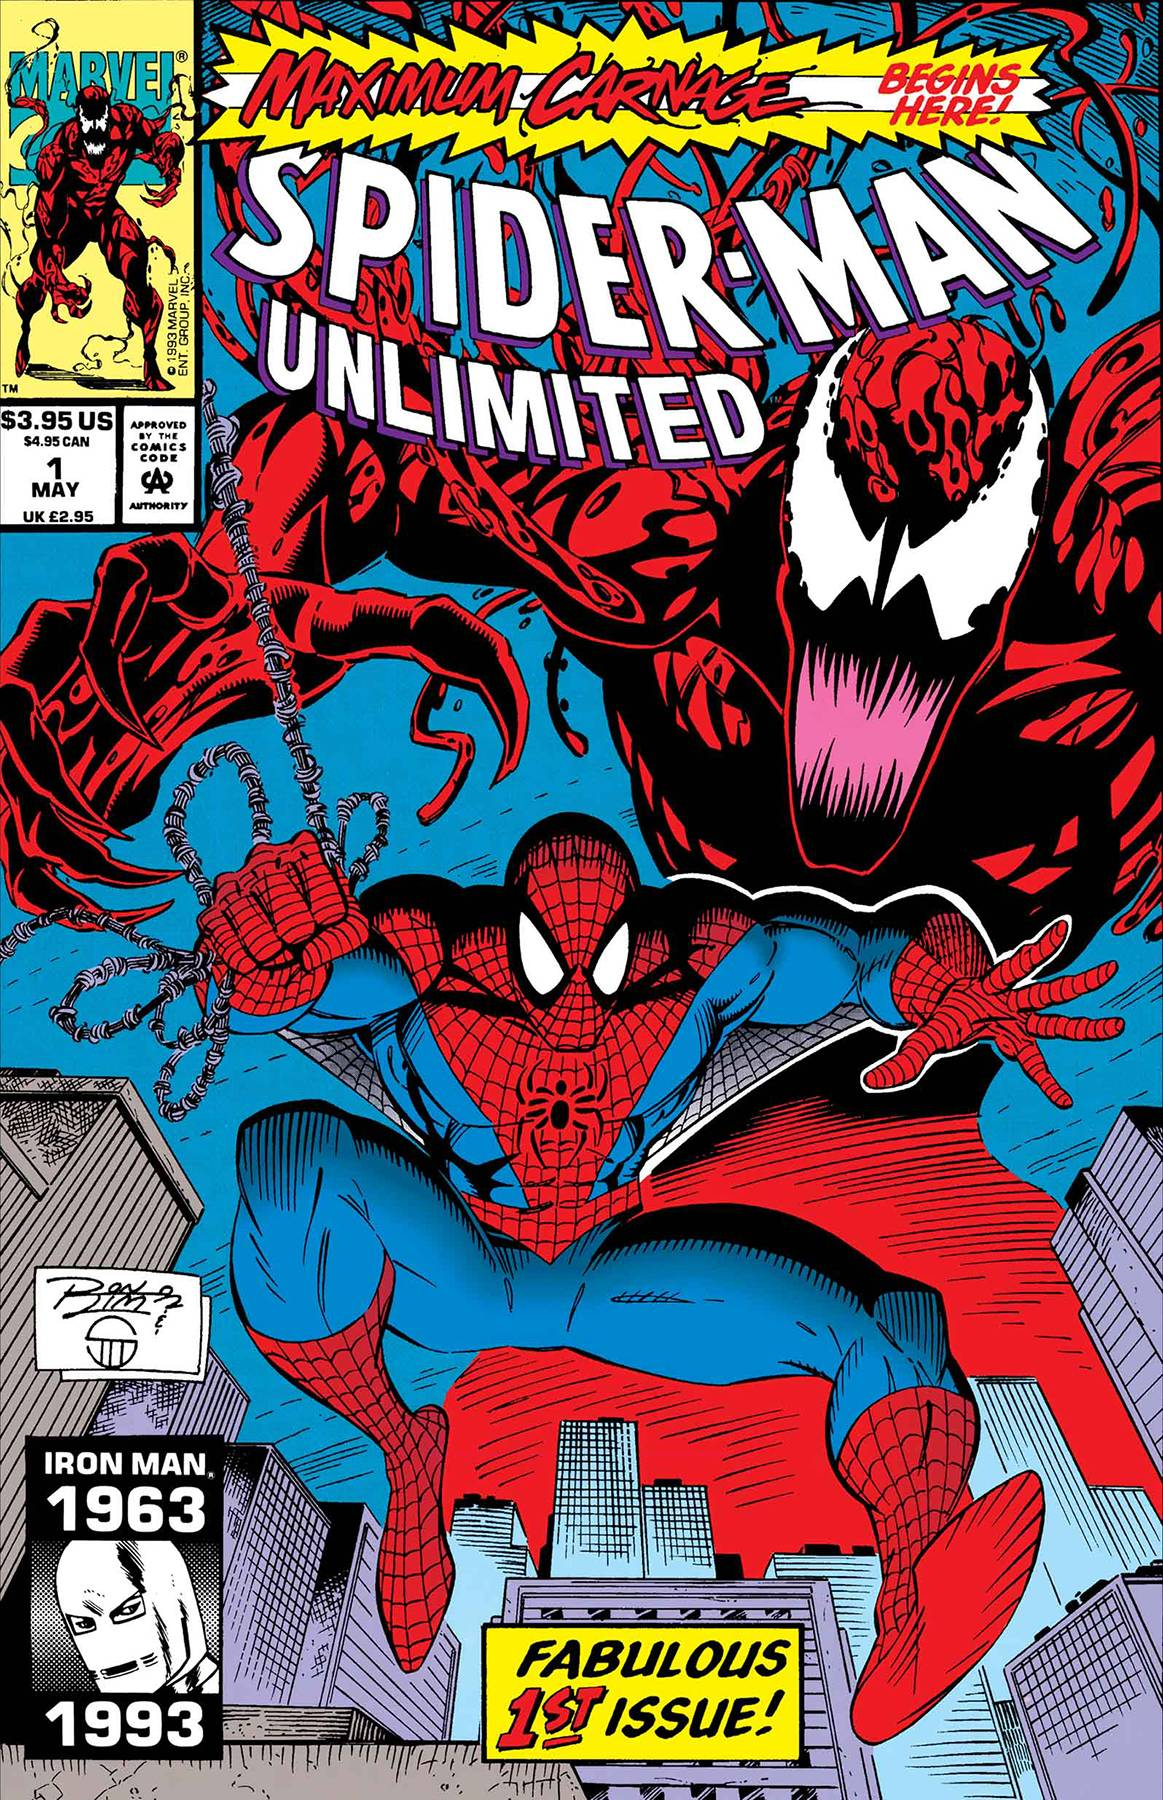 TRUE BELIEVERS ABSOLUTE CARNAGE MAXIMUM CARNAGE 1.jpg